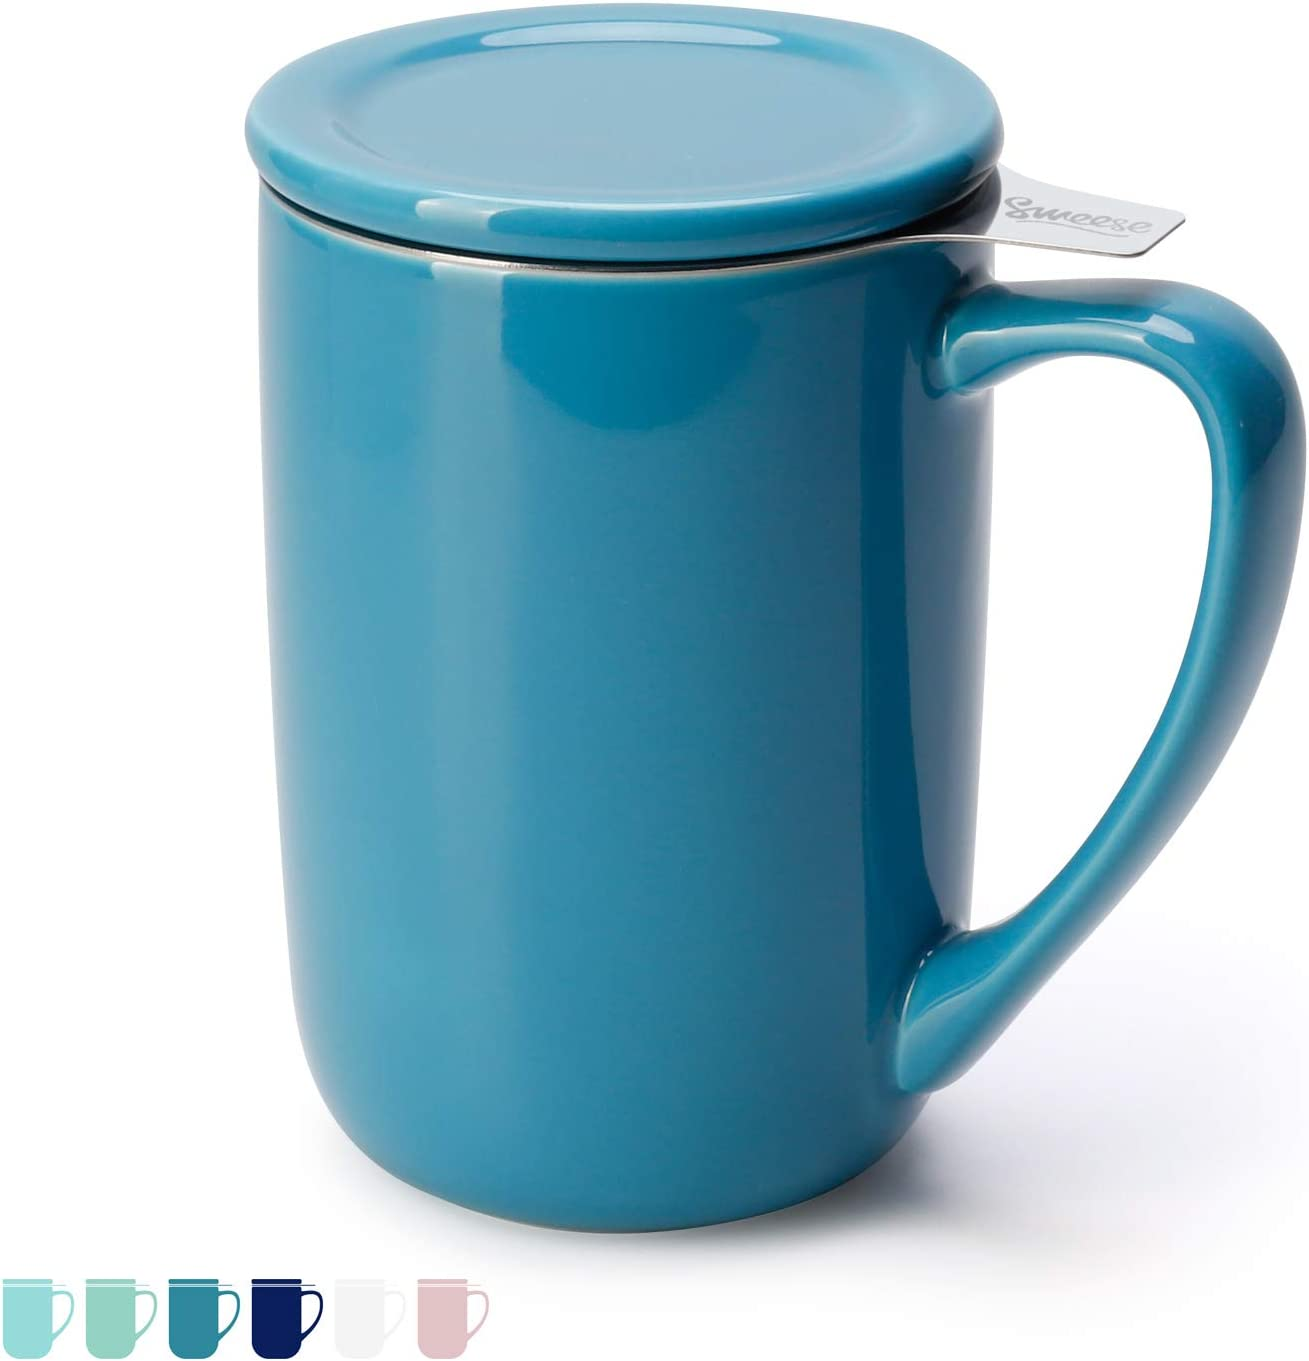 Sweese 203.107 Ceramic Tea Mug with Infuser and Lid, Single Cup Loose Tea Brewing System, Draw Your Own Design, 16 OZ, Steel Blue